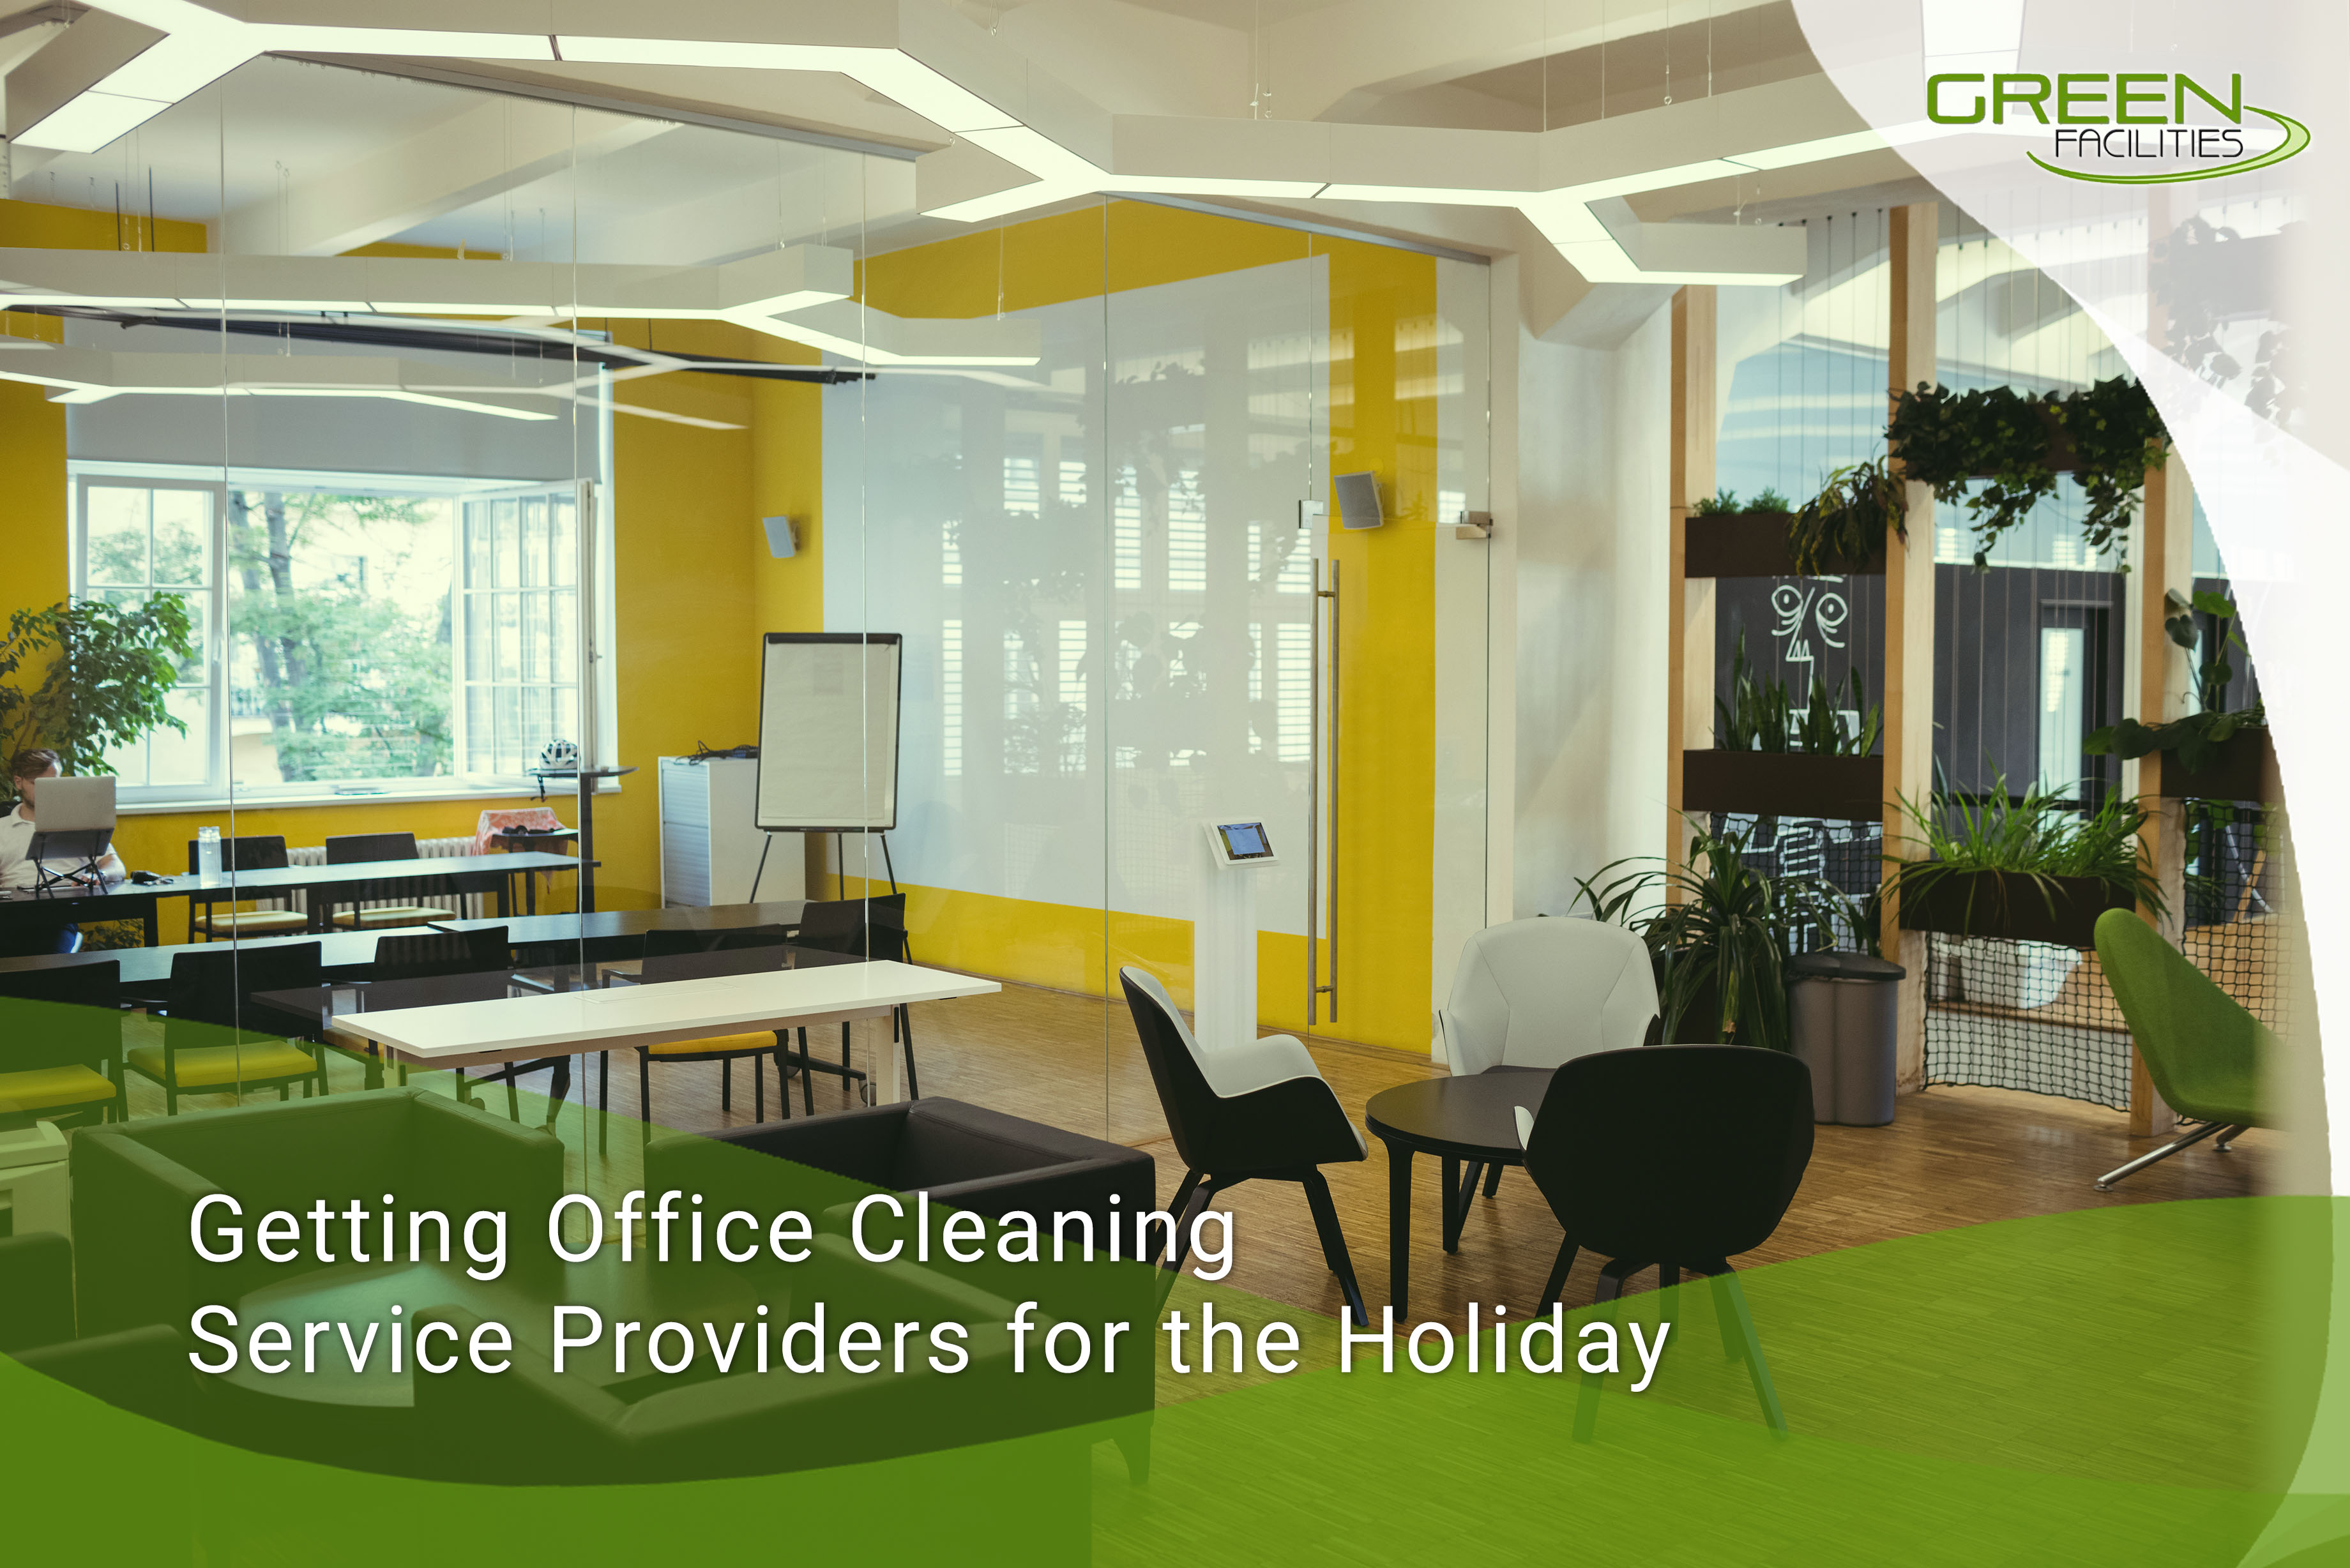 Getting Office Cleaning Service Providers